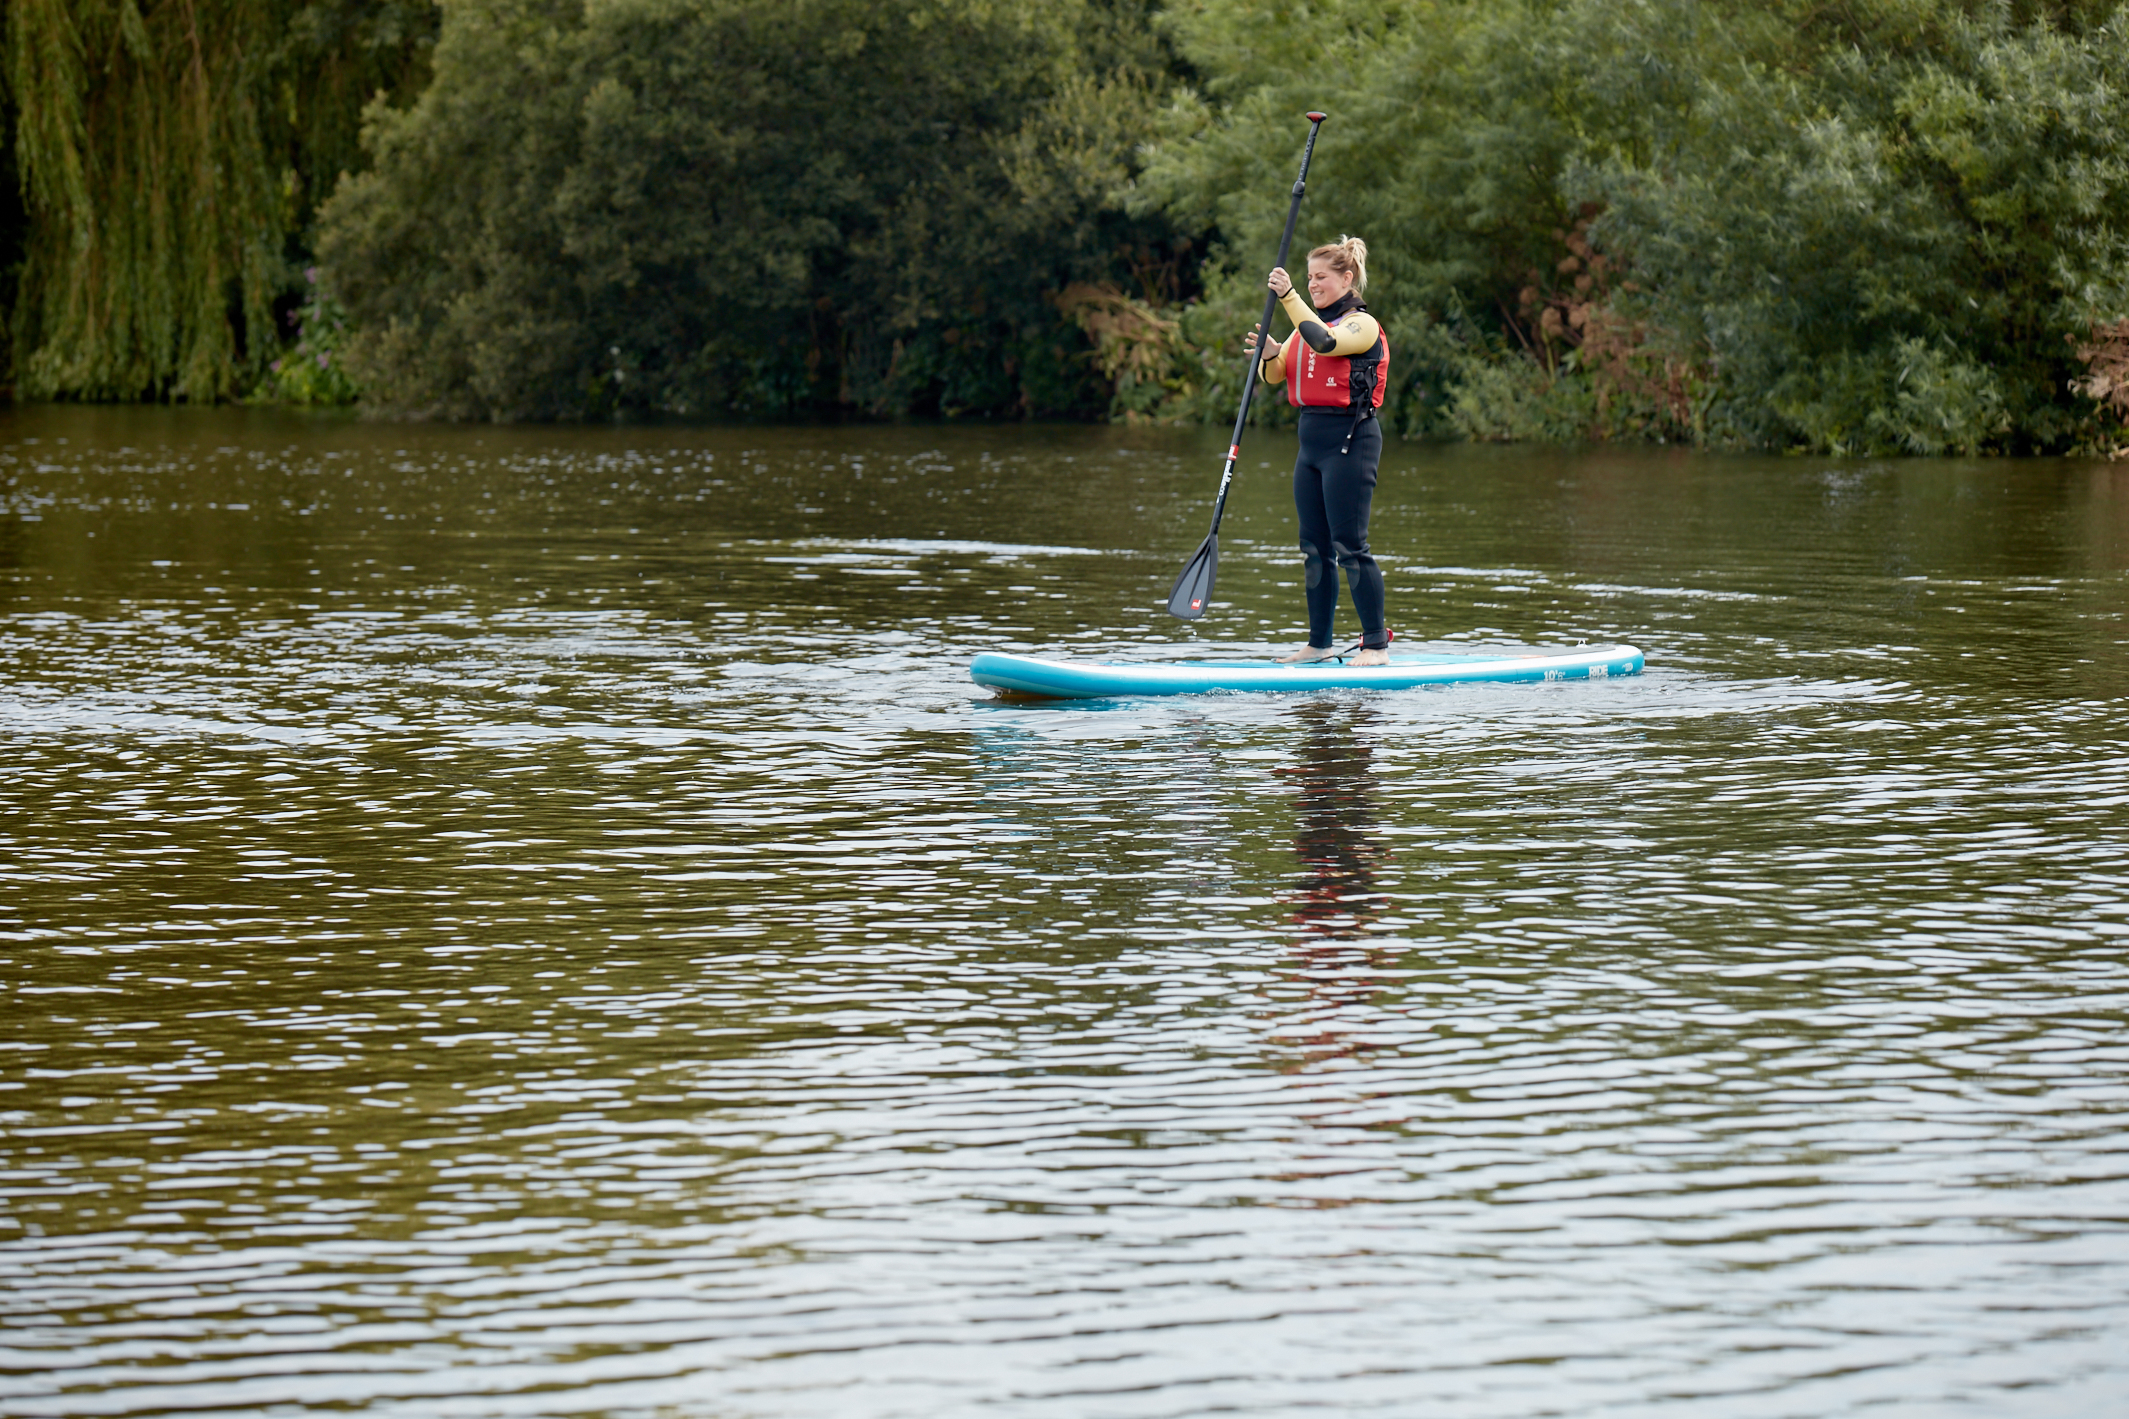 Standup Paddle Boarding